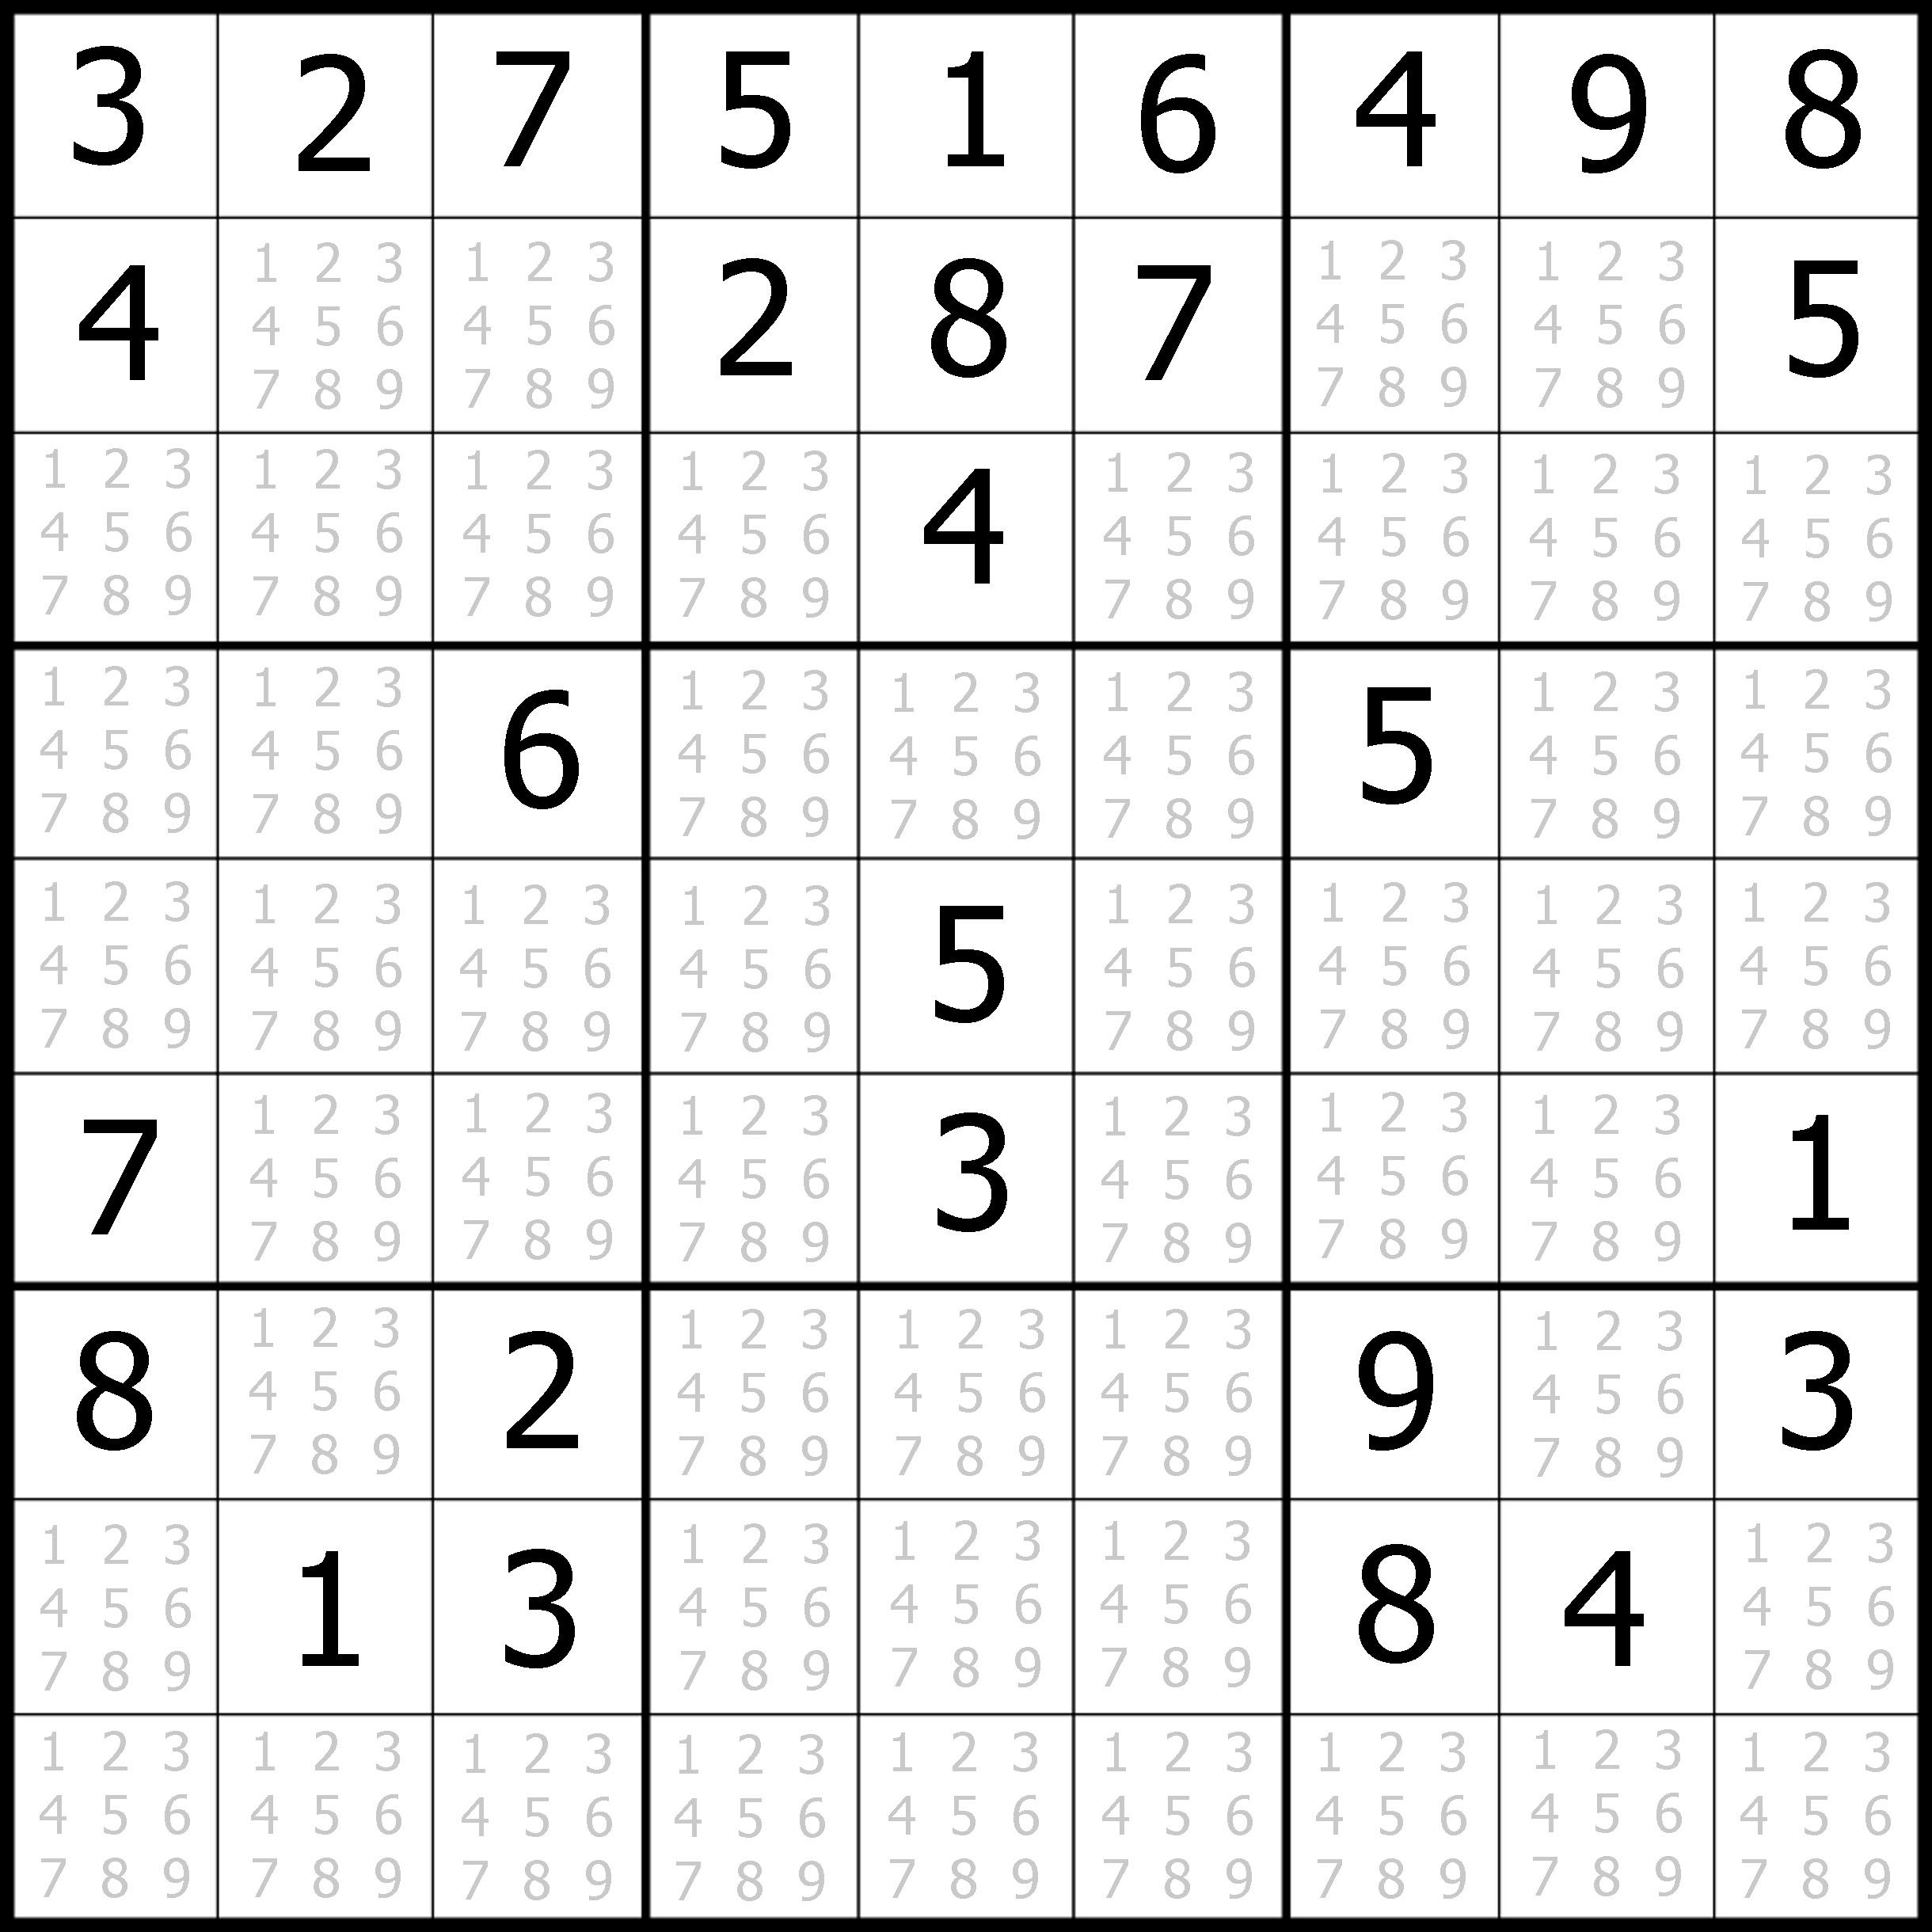 Sudoku Printable | Free, Medium, Printable Sudoku Puzzle #1 | My - Printable Sudoku Puzzles For 5Th Grade